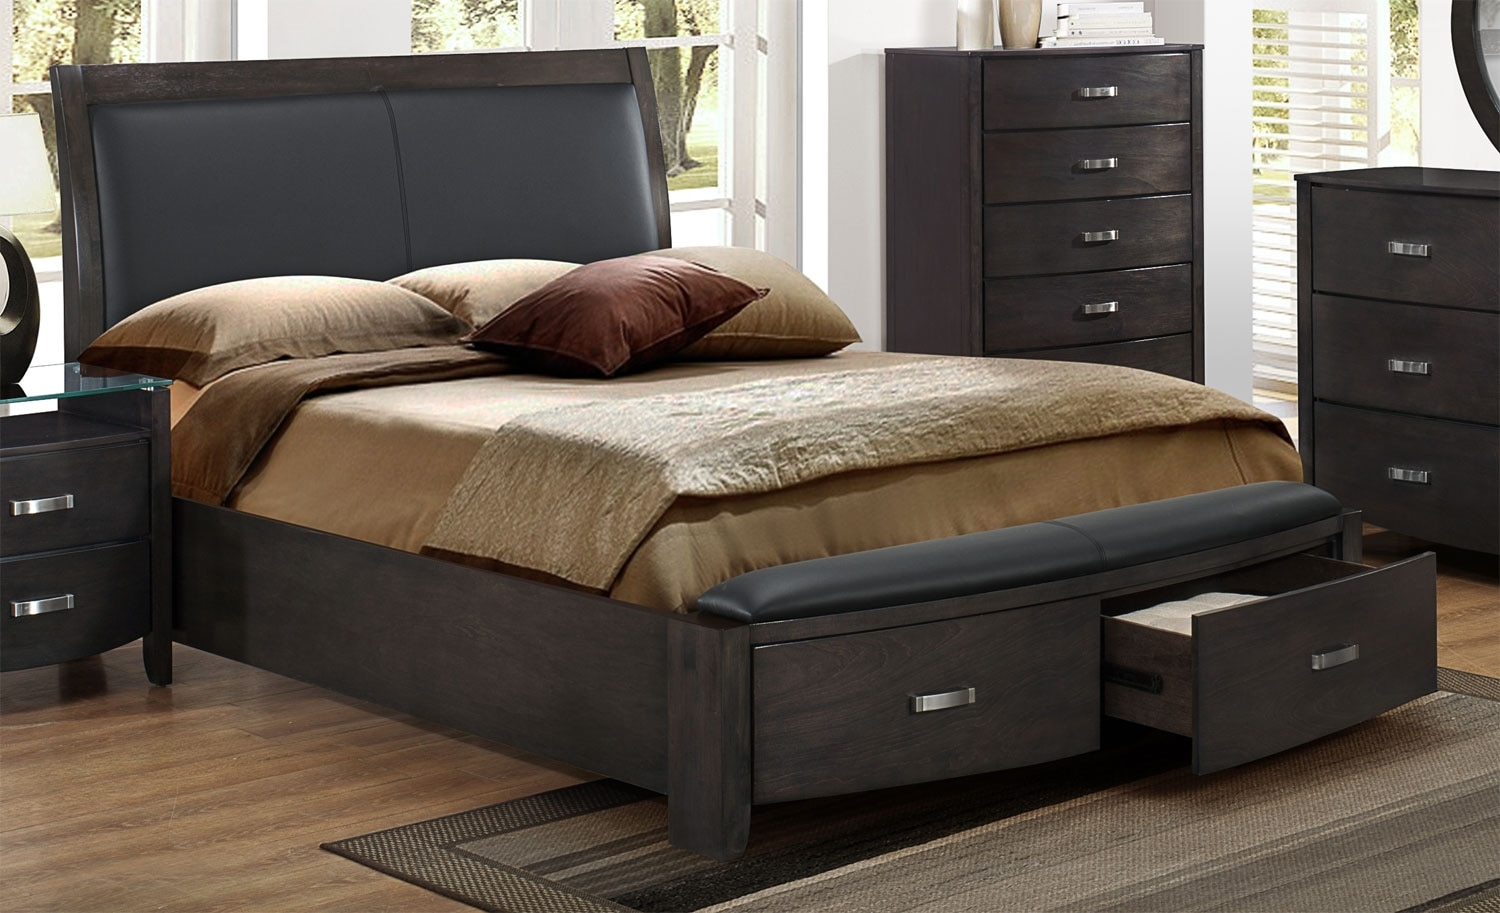 Cinema king bed charcoal leon 39 s for Bed settings